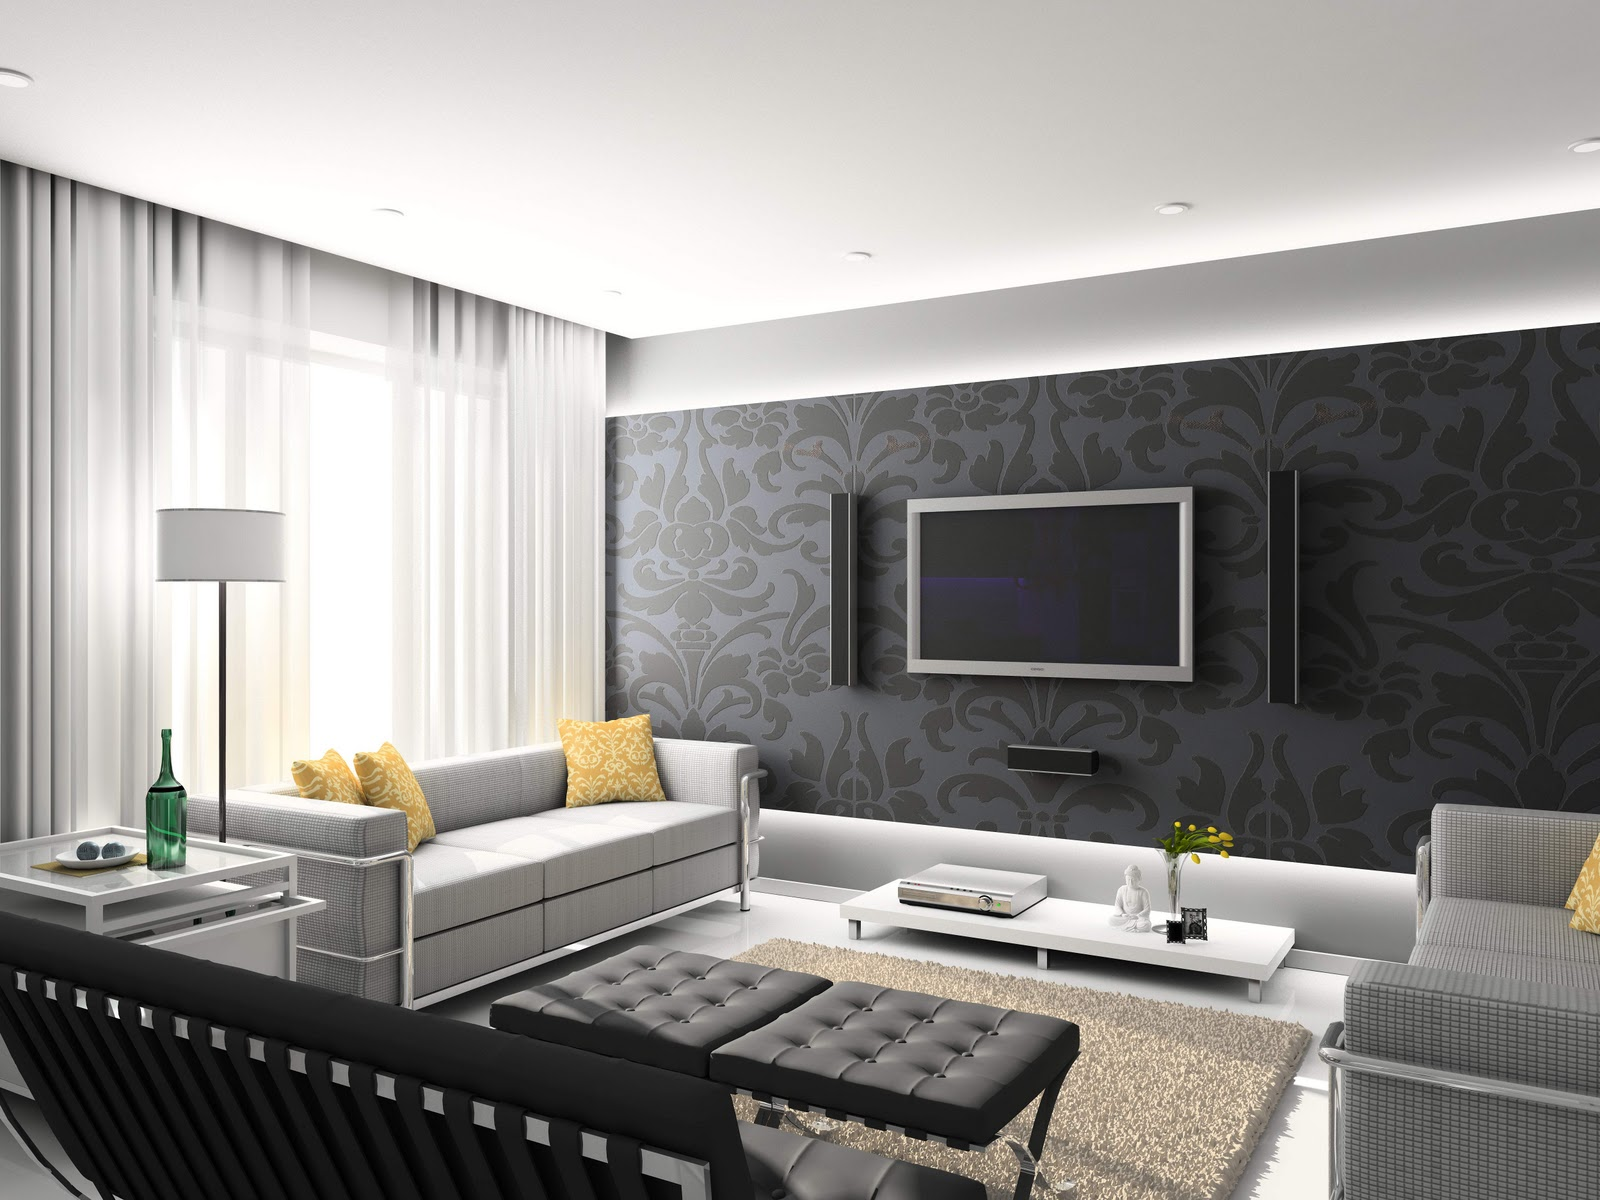 http://4.bp.blogspot.com/-STYnWSxFhHA/TZtwZv1NbHI/AAAAAAAAAvk/BB9iKivReCY/s1600/Modern-Living-Room-Home-Design-Ideas111.jpg